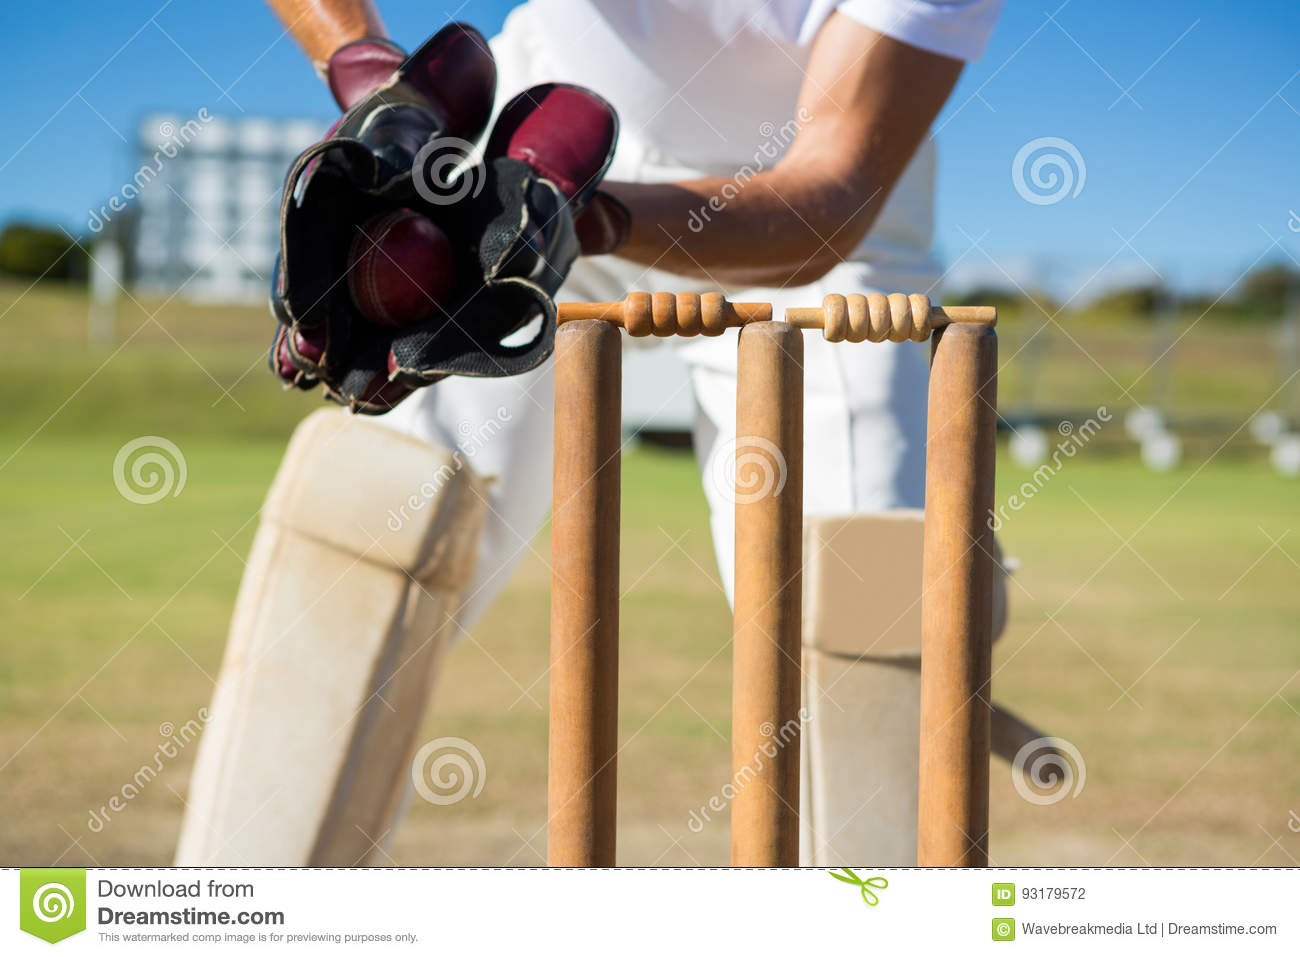 Cropped image of wicket keeper standing by stumps